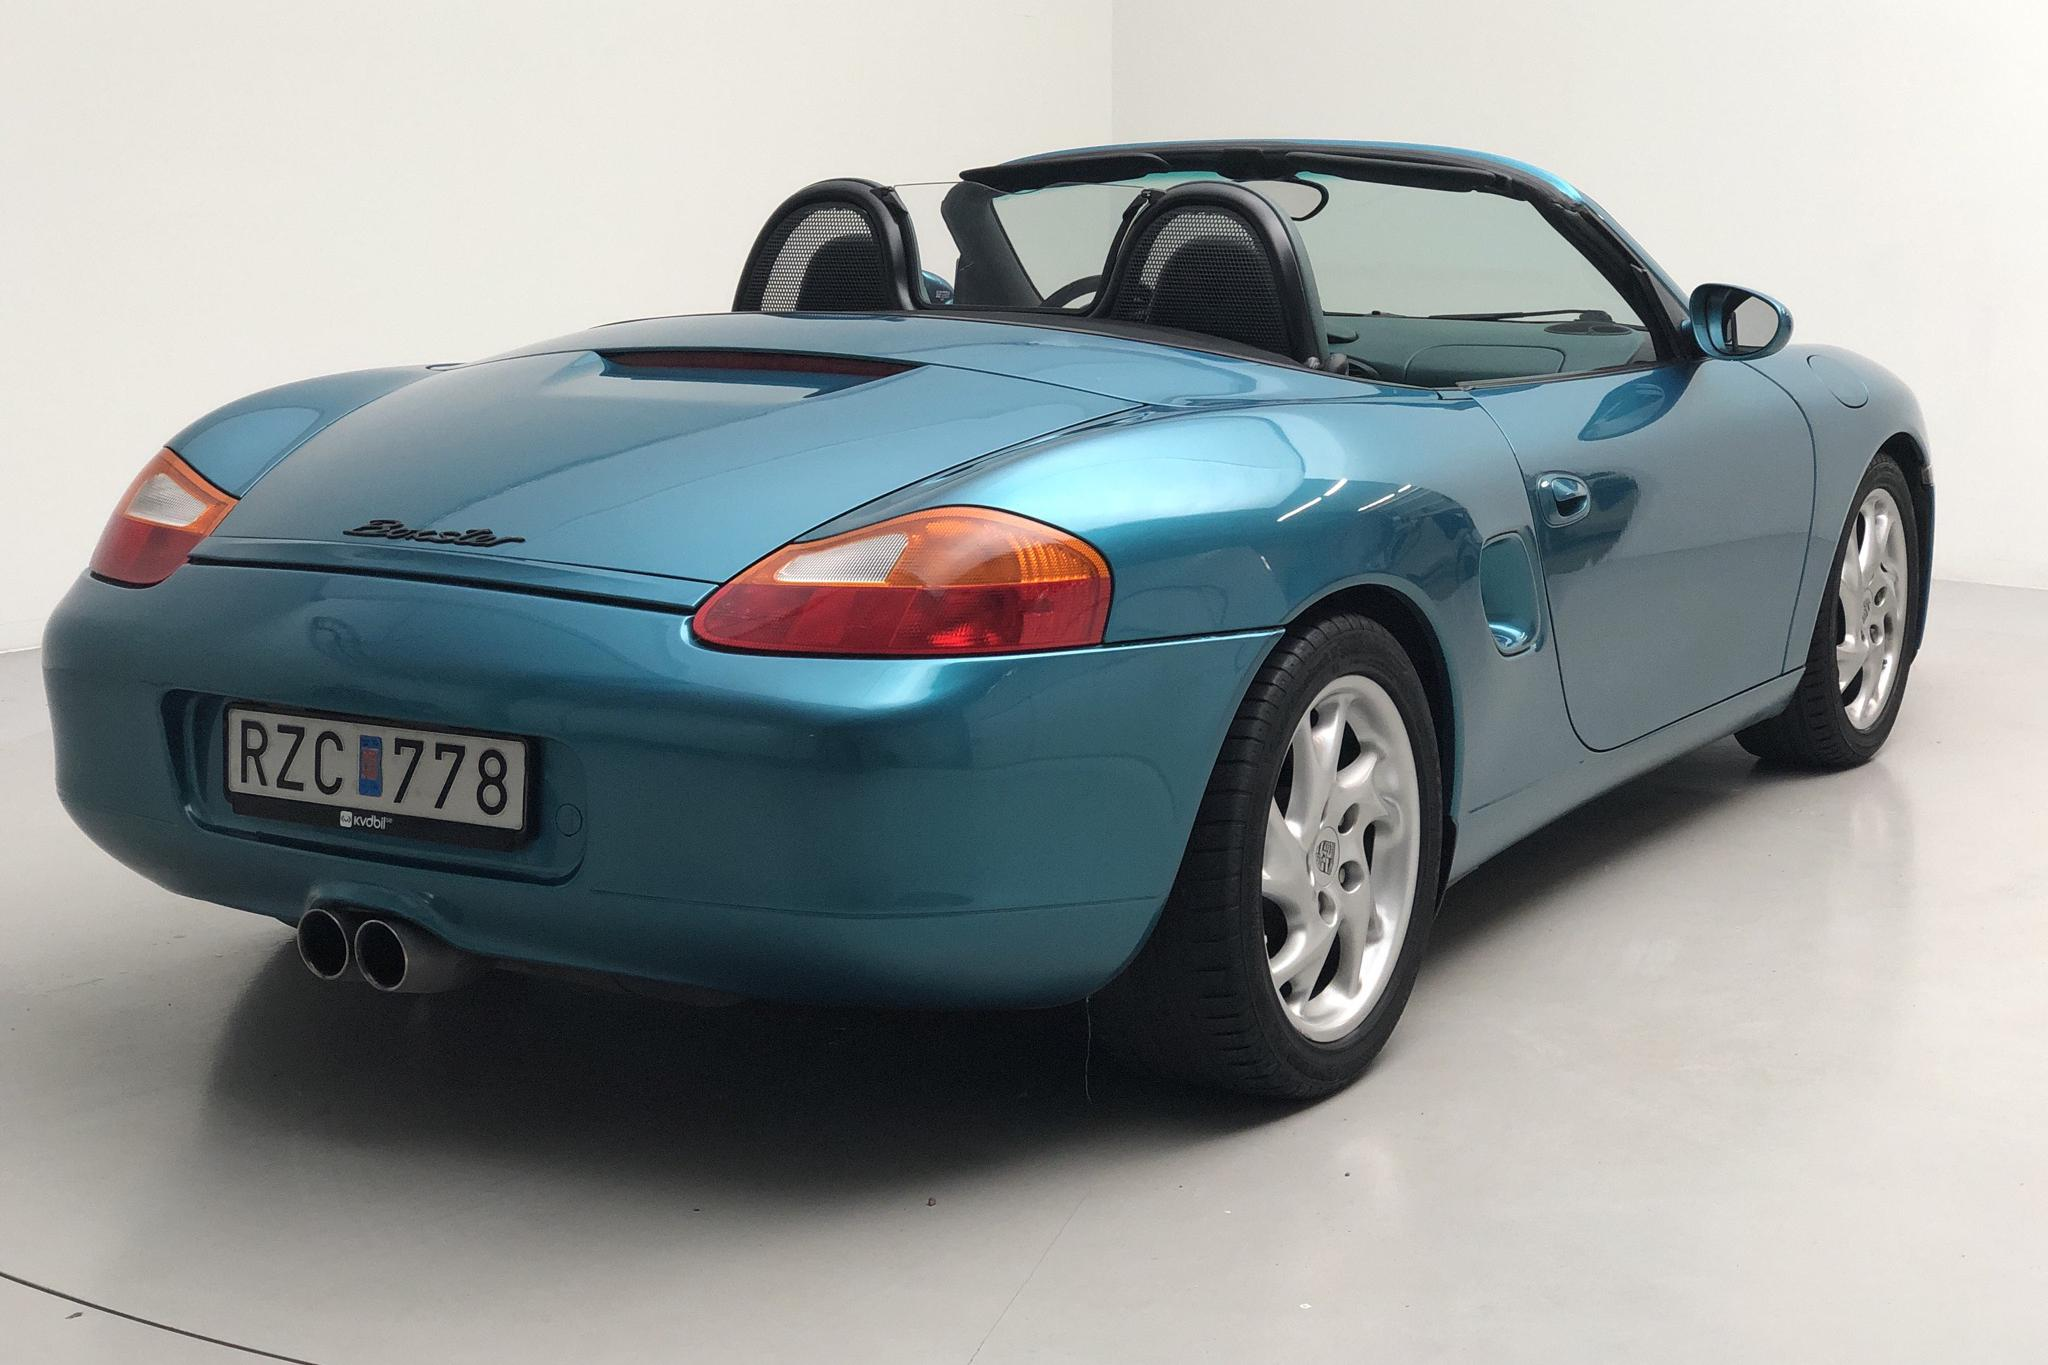 Porsche Boxster 2.5 (204hk) - 90 660 km - Manual - green - 1997